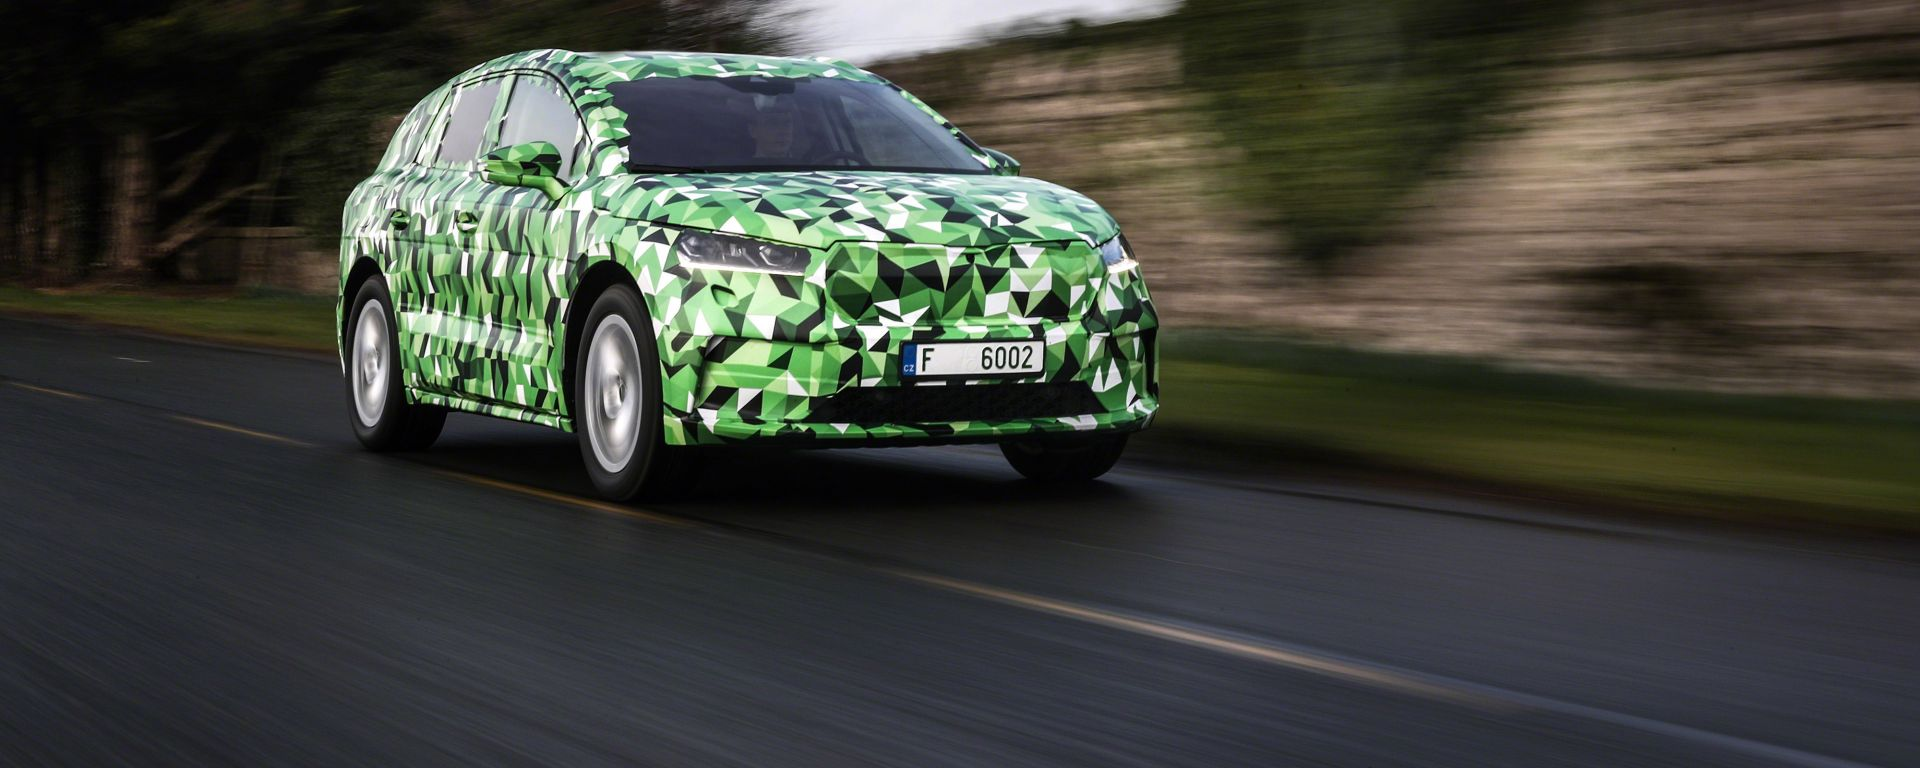 Skoda Enyaq iV: 3/4 laterale in movimento